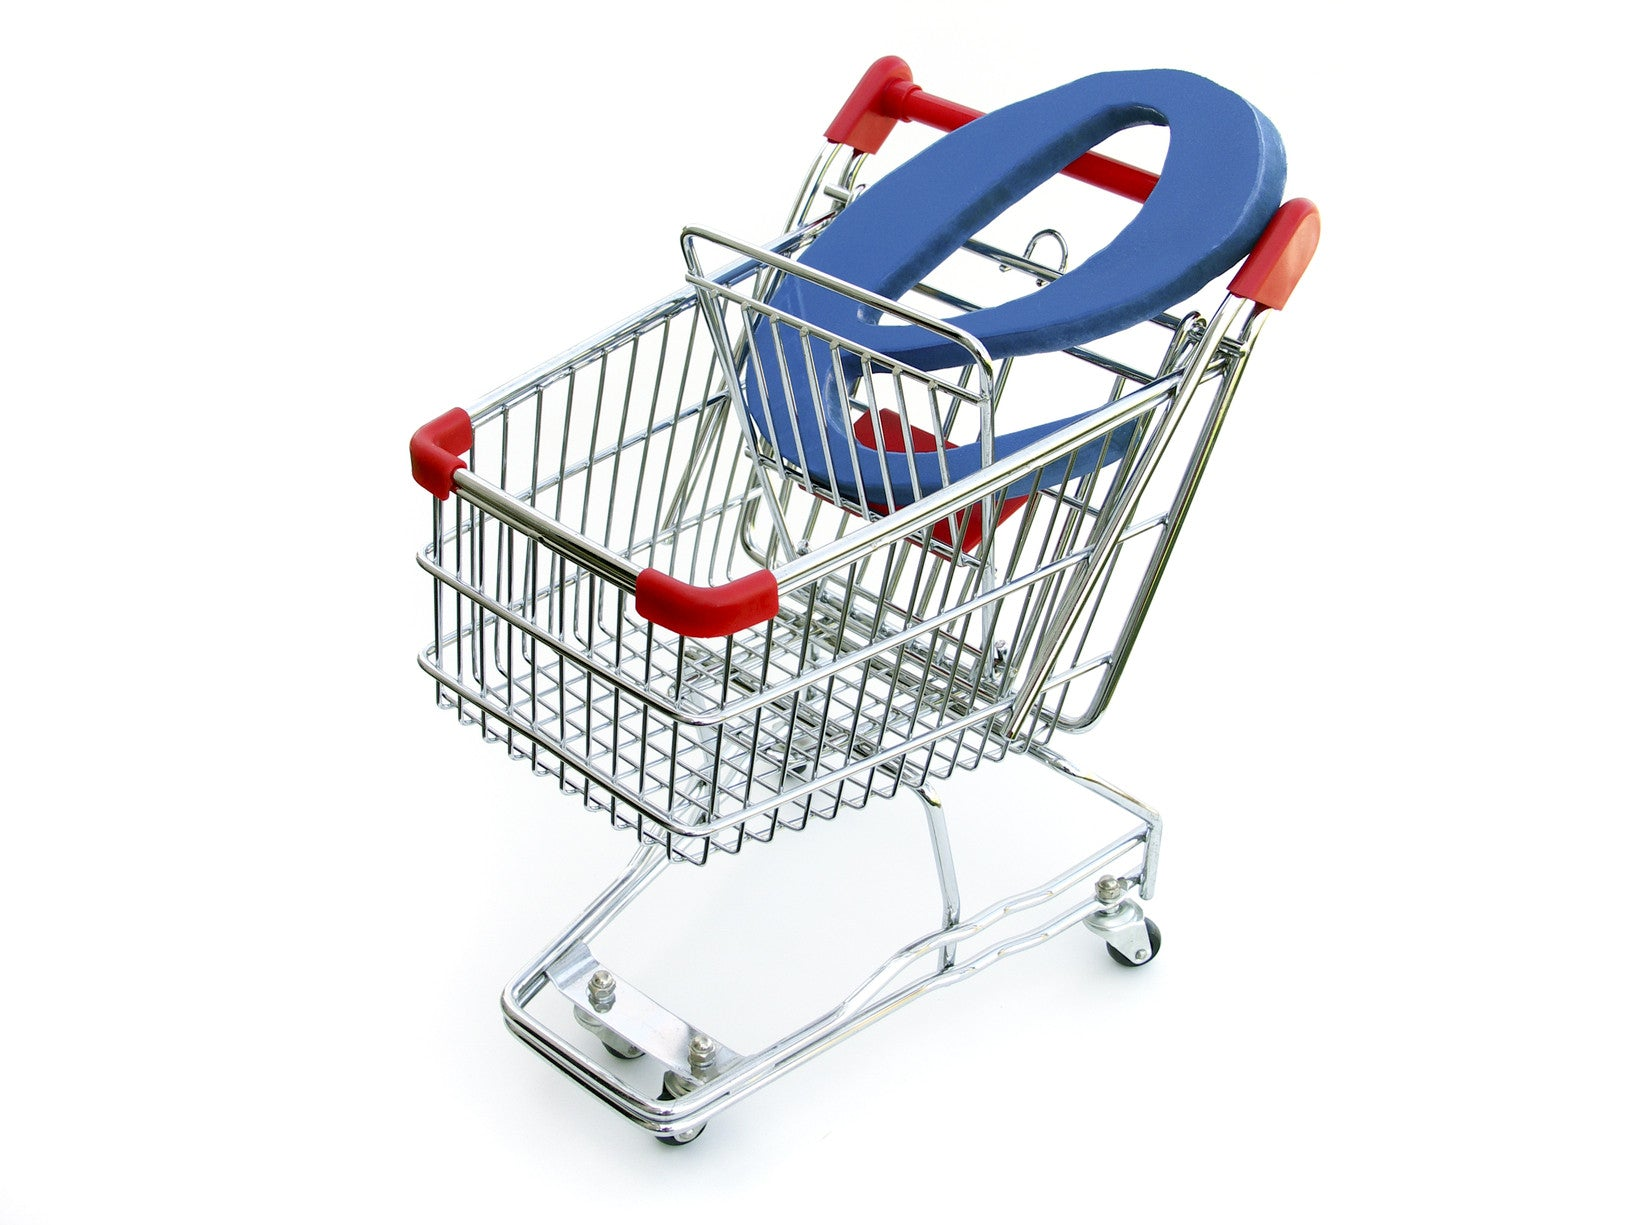 A Persistent Shopping Cart for Your Convenience